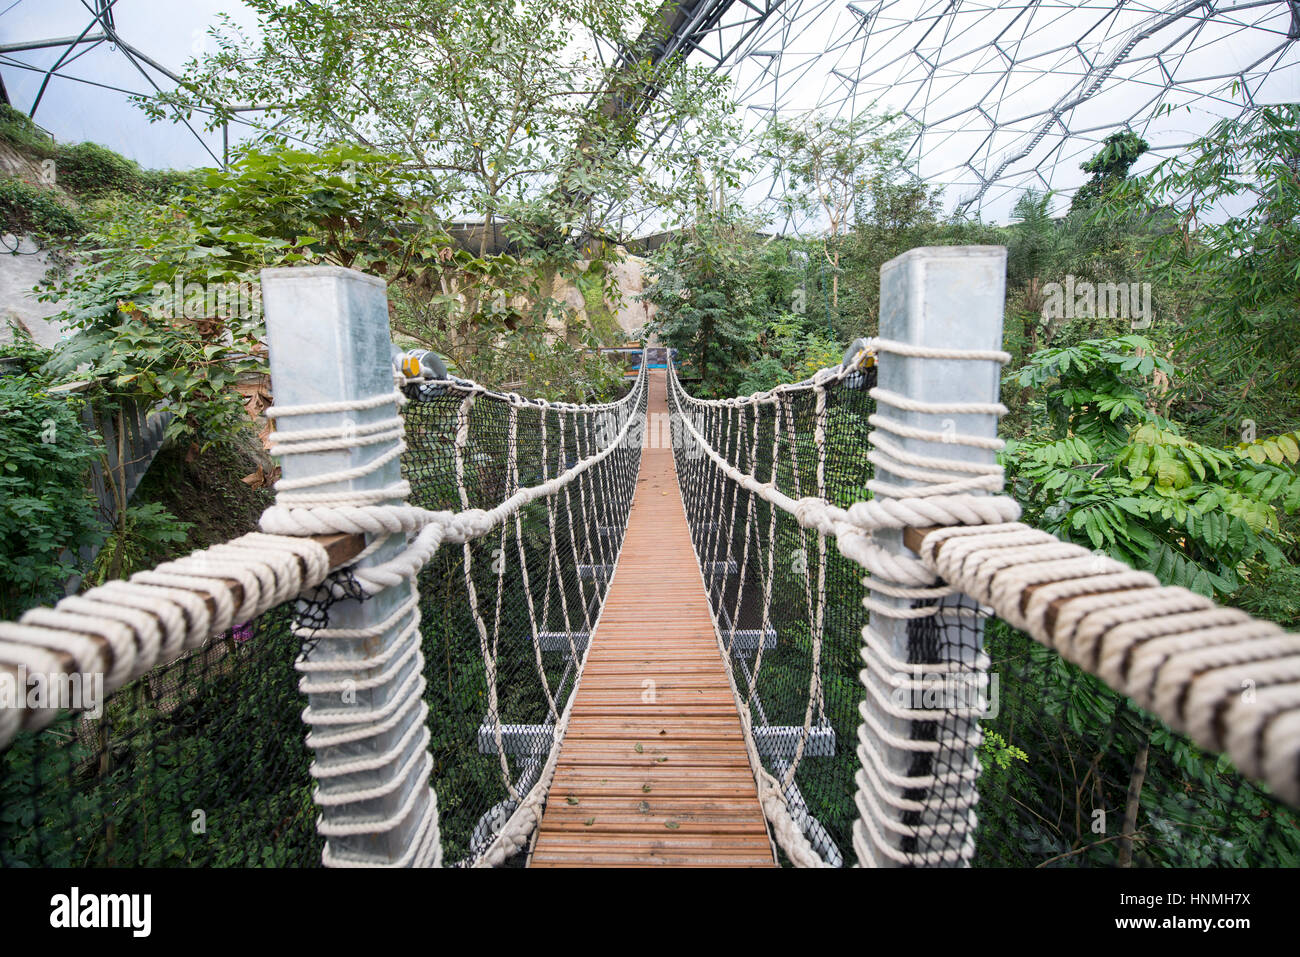 The new Rope Bridge inside the Rainforest Biome, Eden Project. Stock Photo